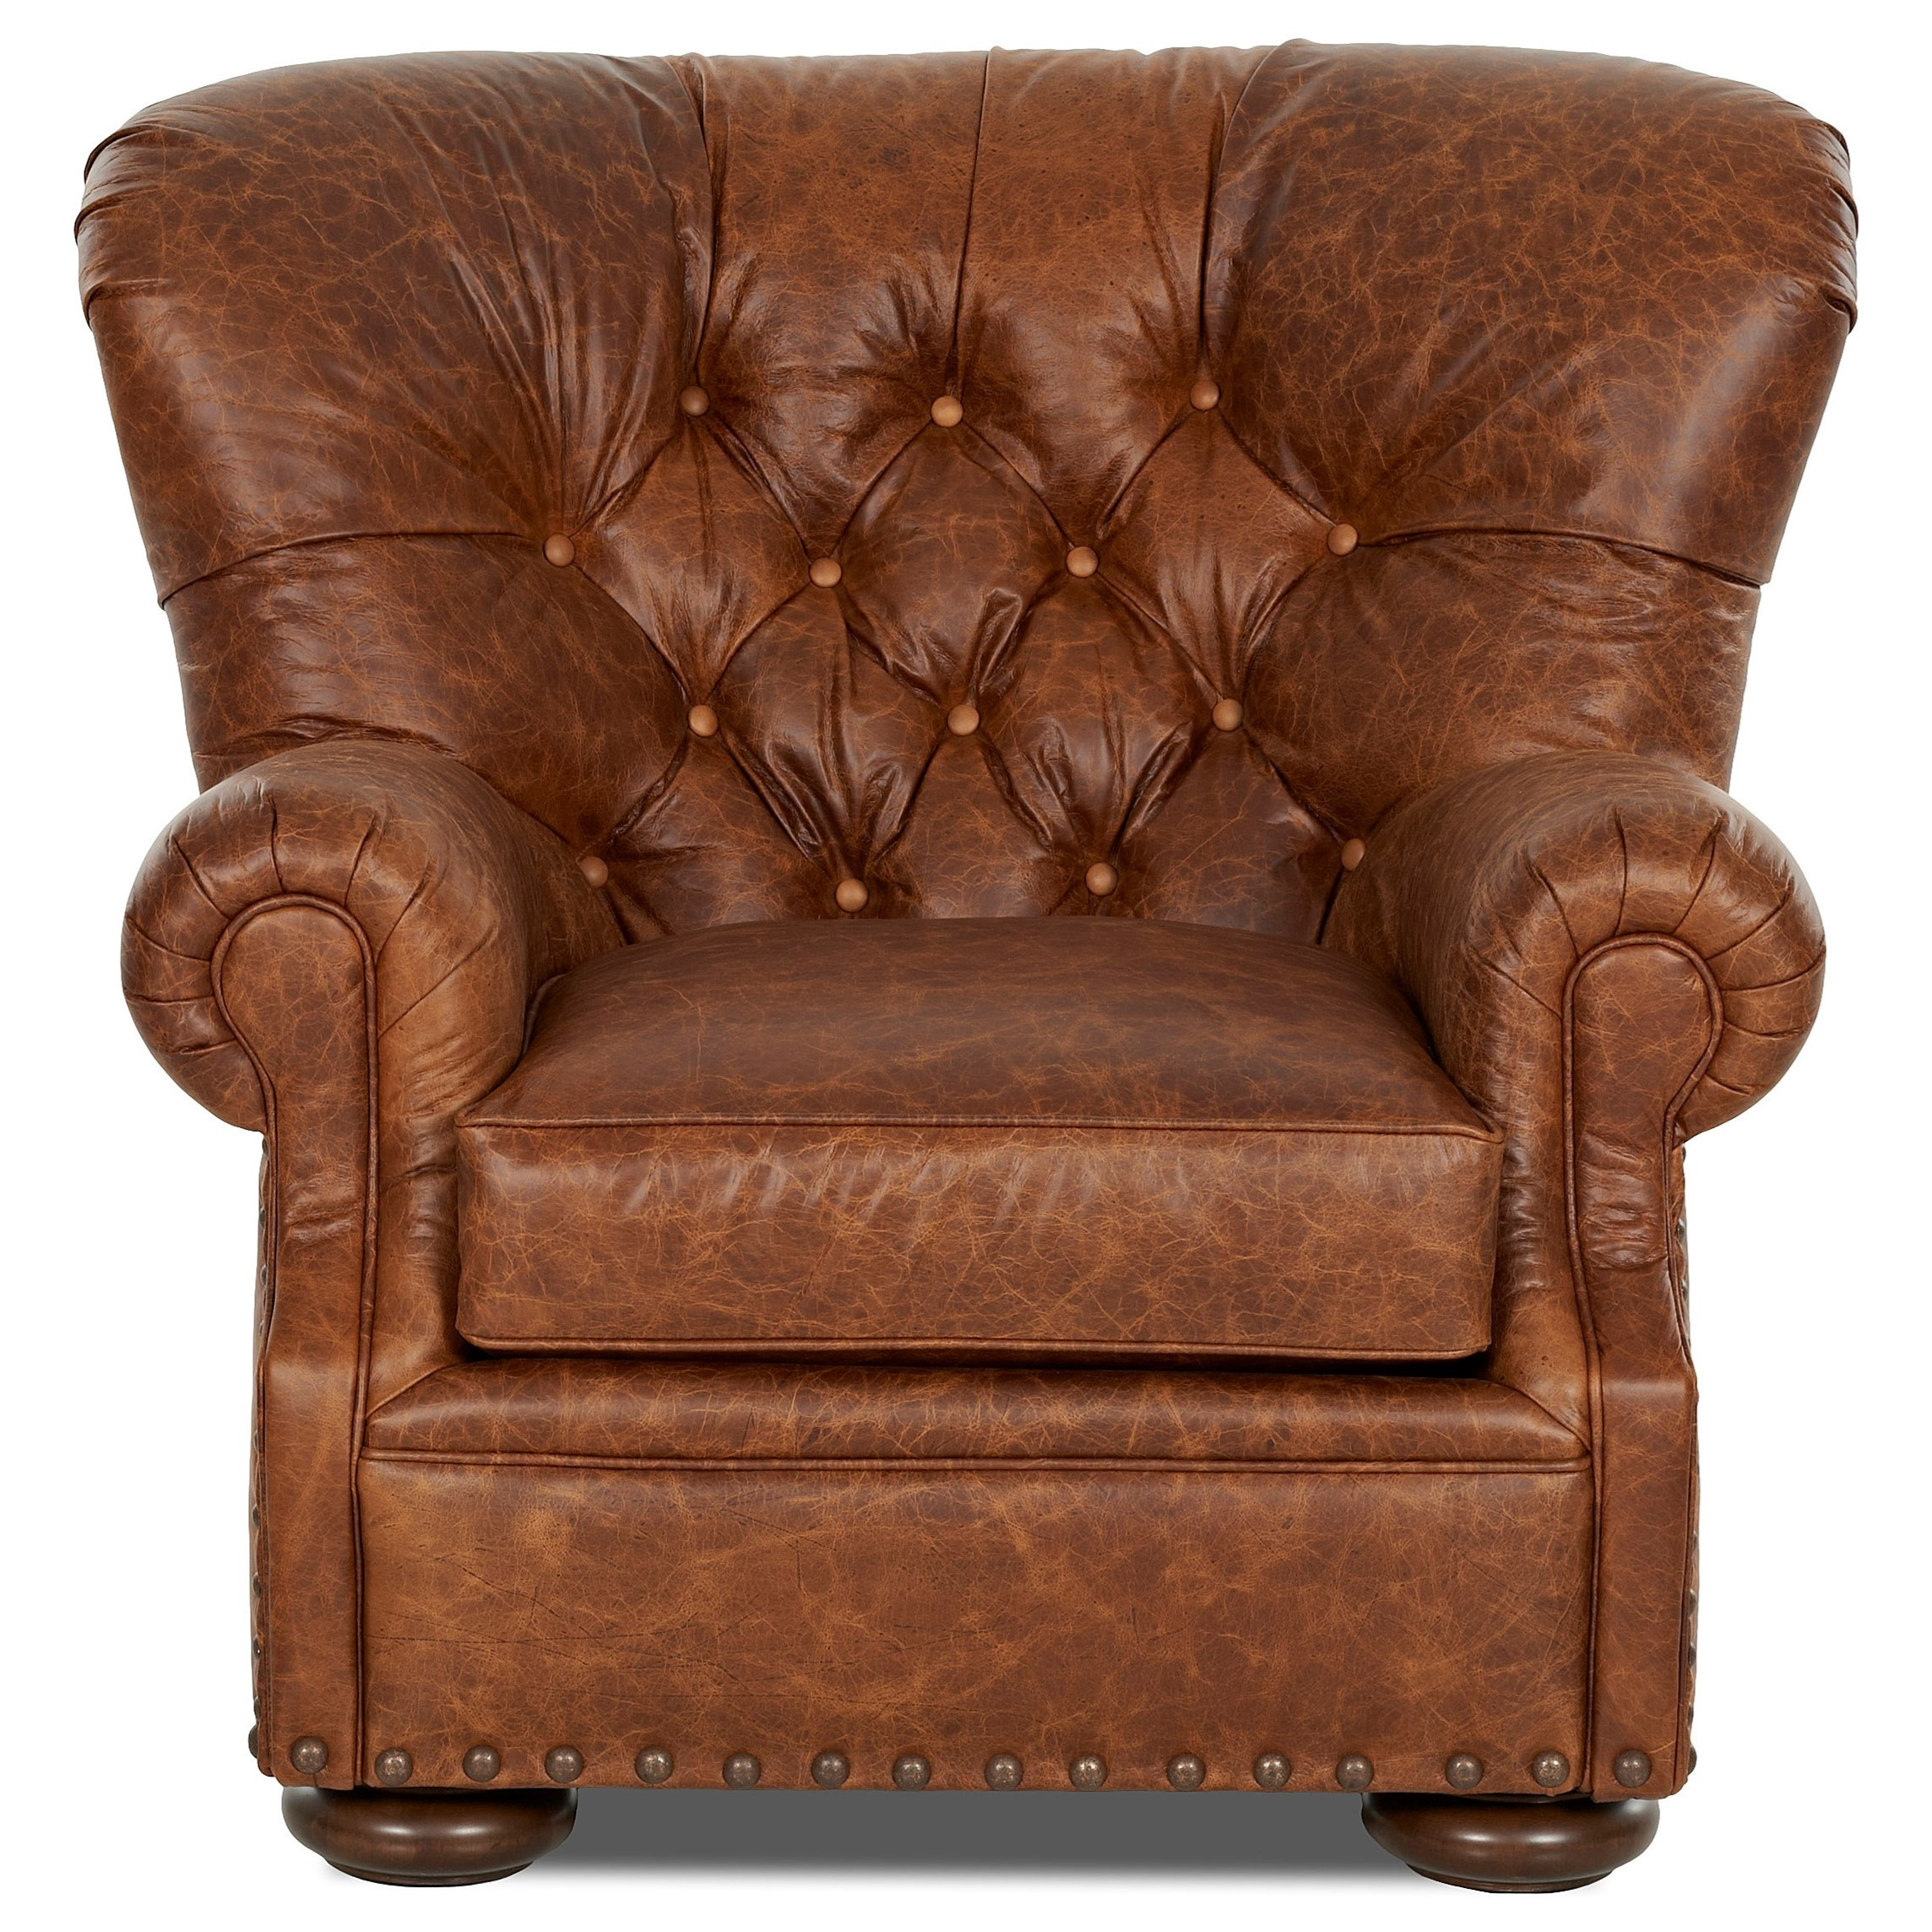 Leather Chair And Ottoman Tufted Leather Chair And Ottoman Set By Klaussner Wolf And